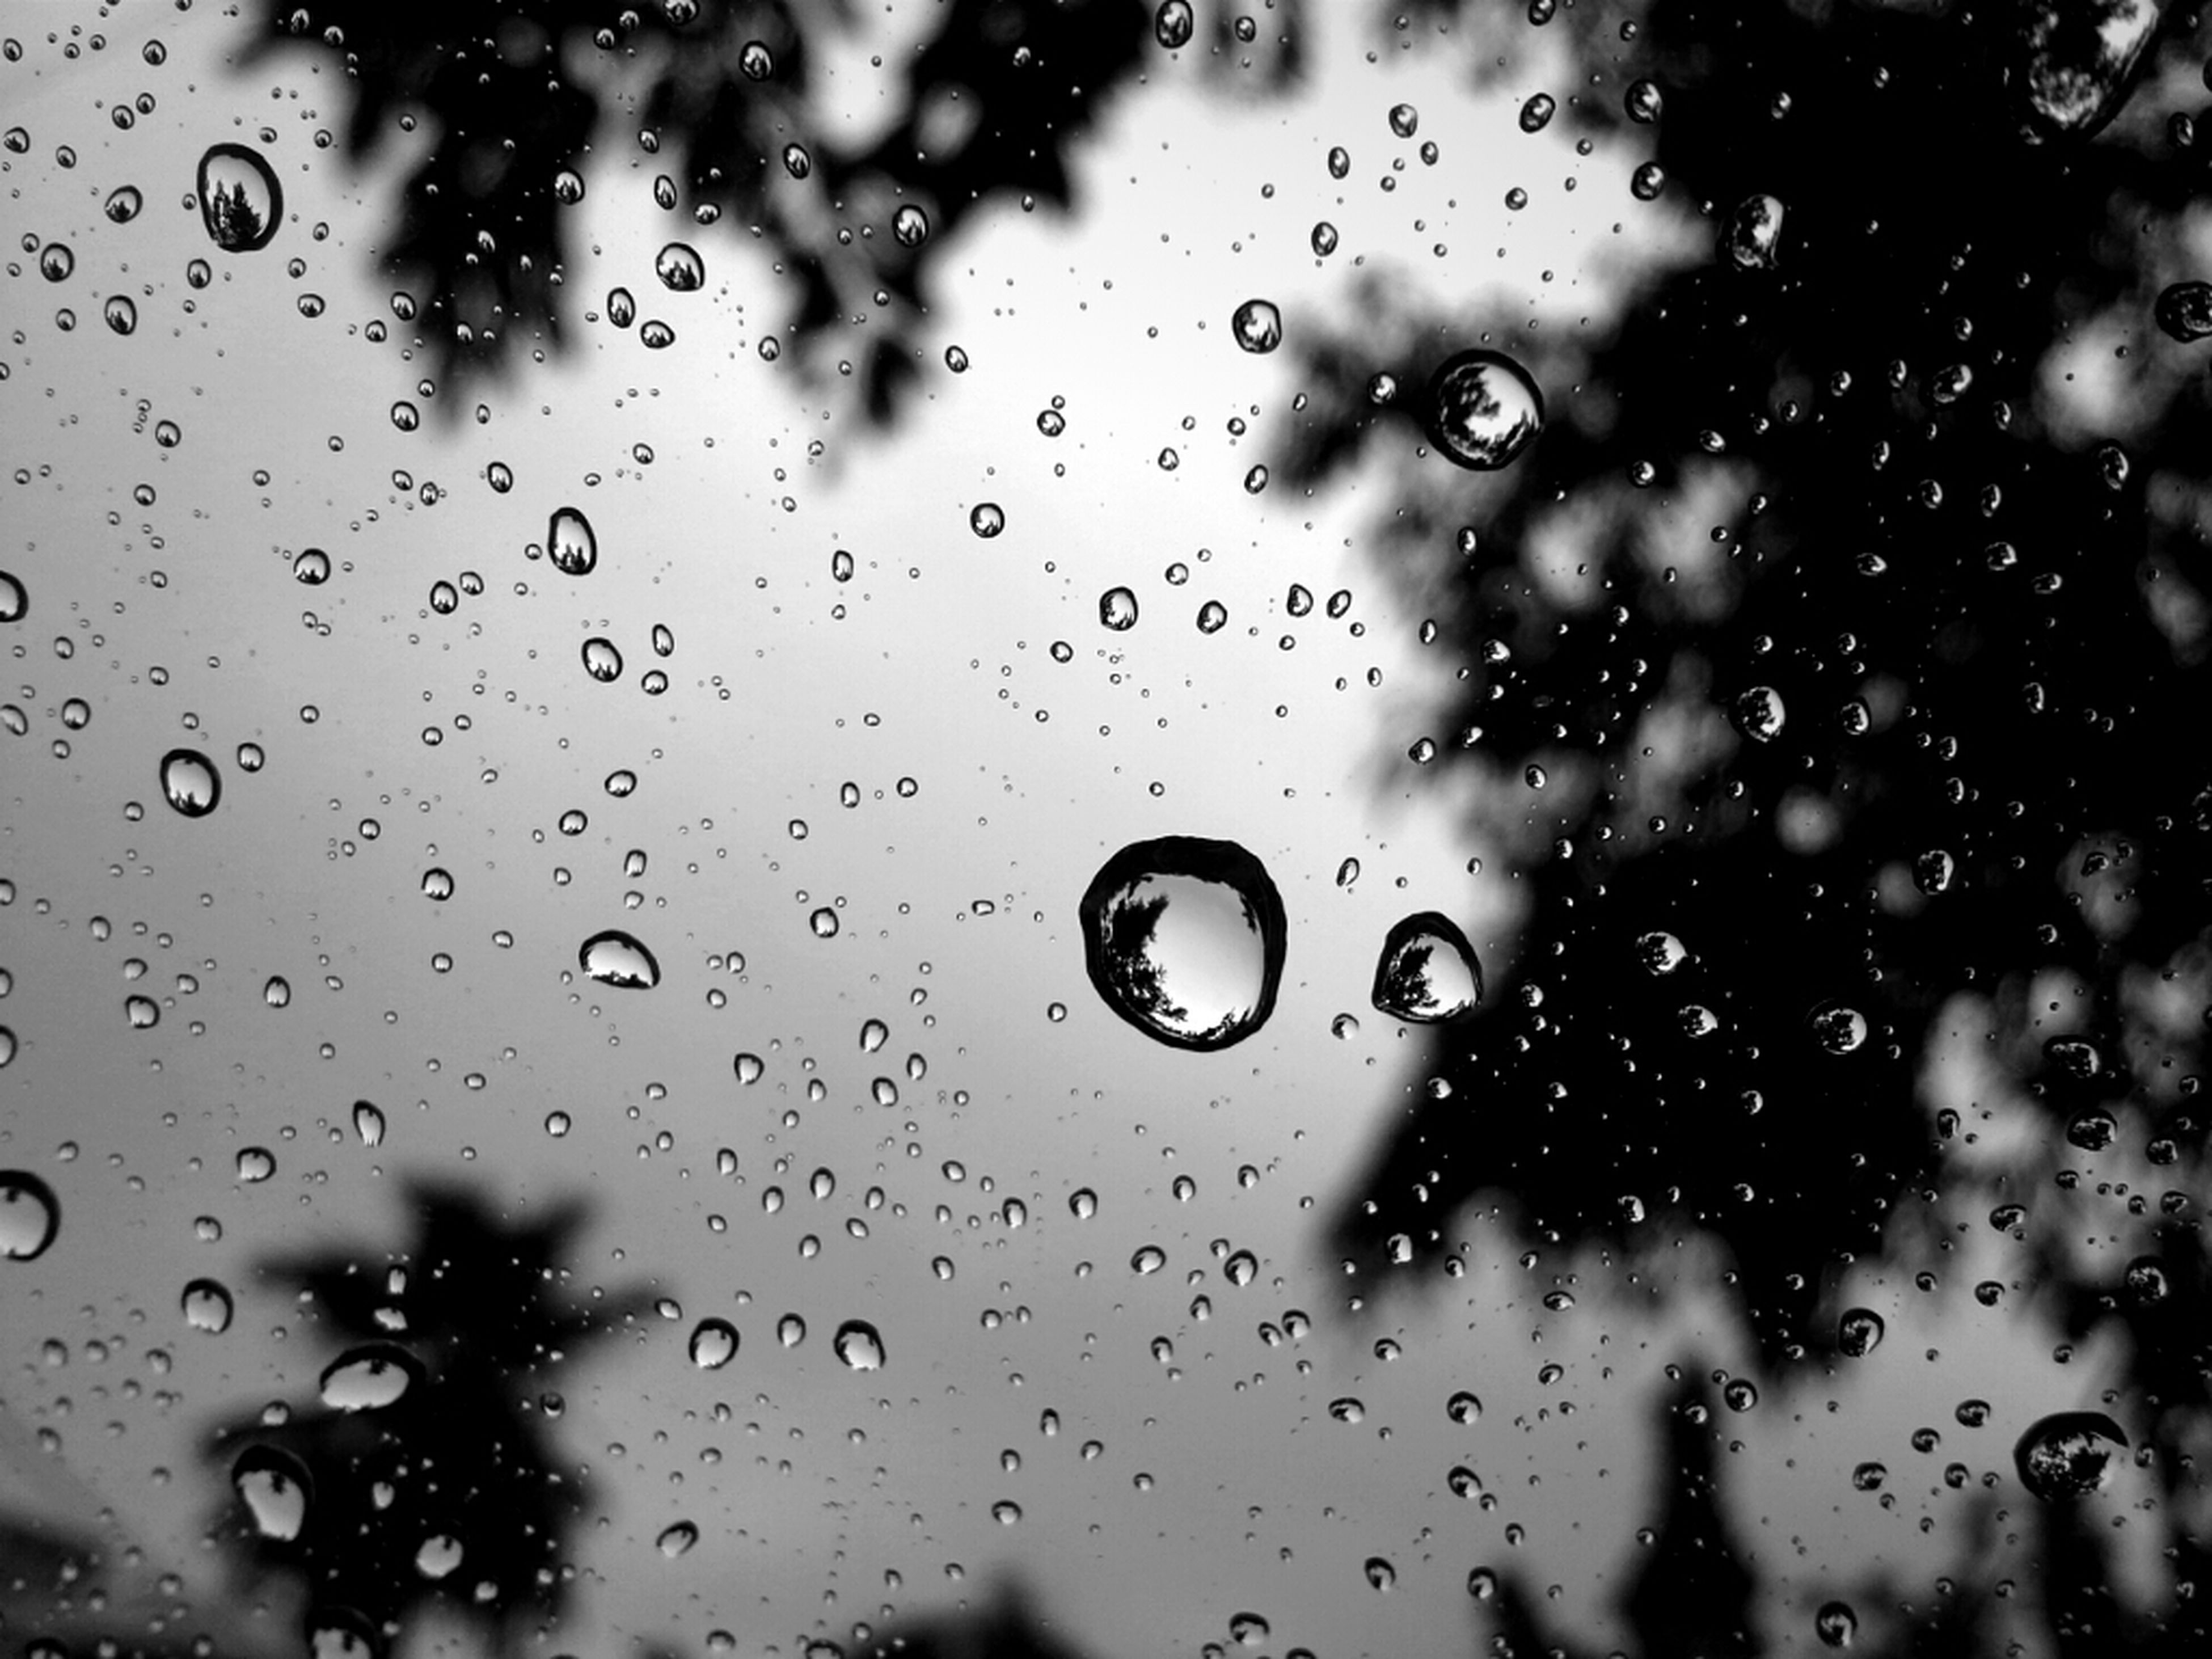 drop, wet, rain, water, window, raindrop, transparent, focus on foreground, weather, glass - material, indoors, full frame, backgrounds, water drop, close-up, droplet, season, glass, sky, monsoon